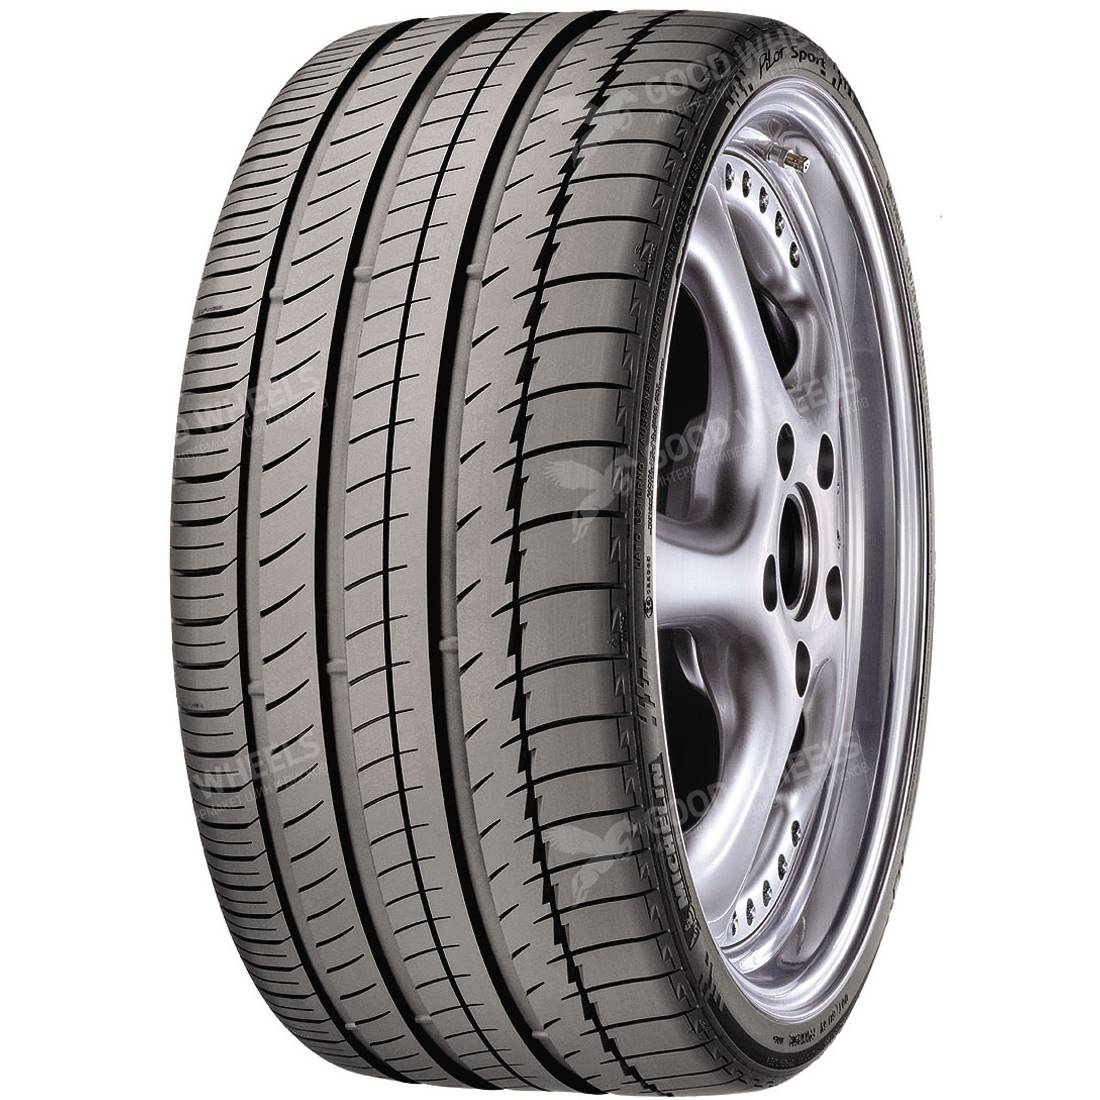 Michelin Pilot Sport 2 (PS2) 295/35 R18 99Y